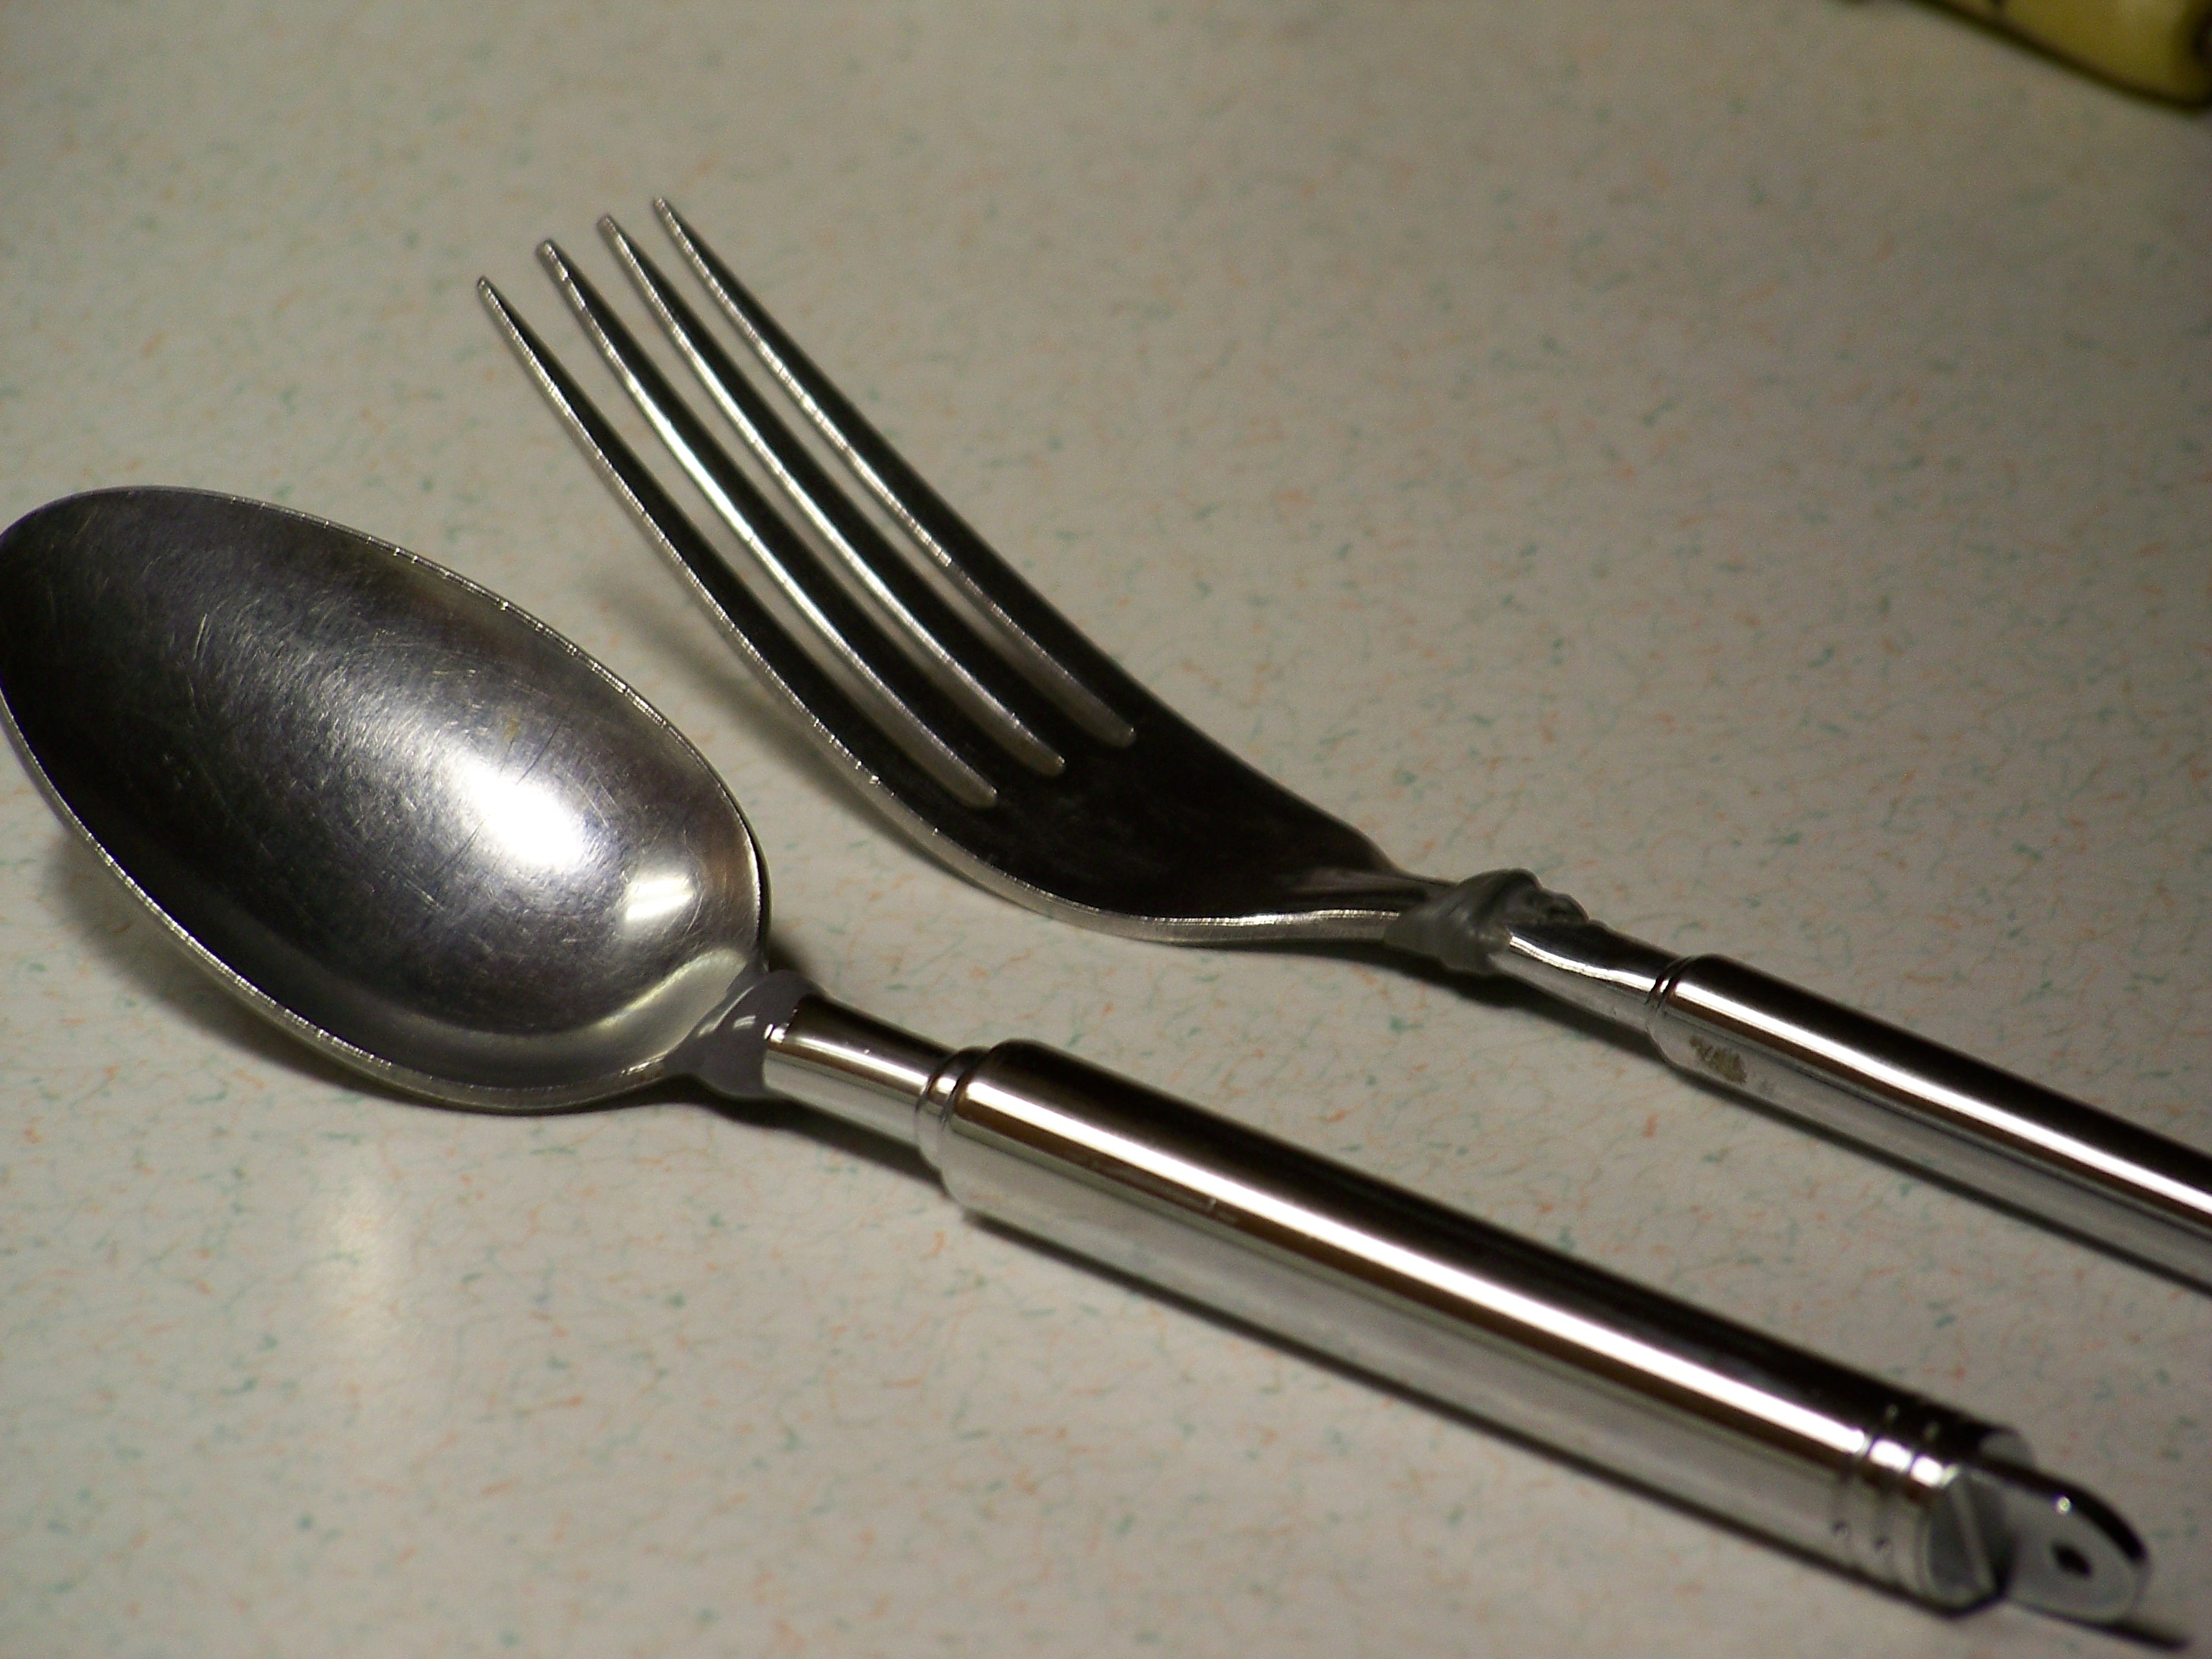 Pocket sized collapsible eating utensils.